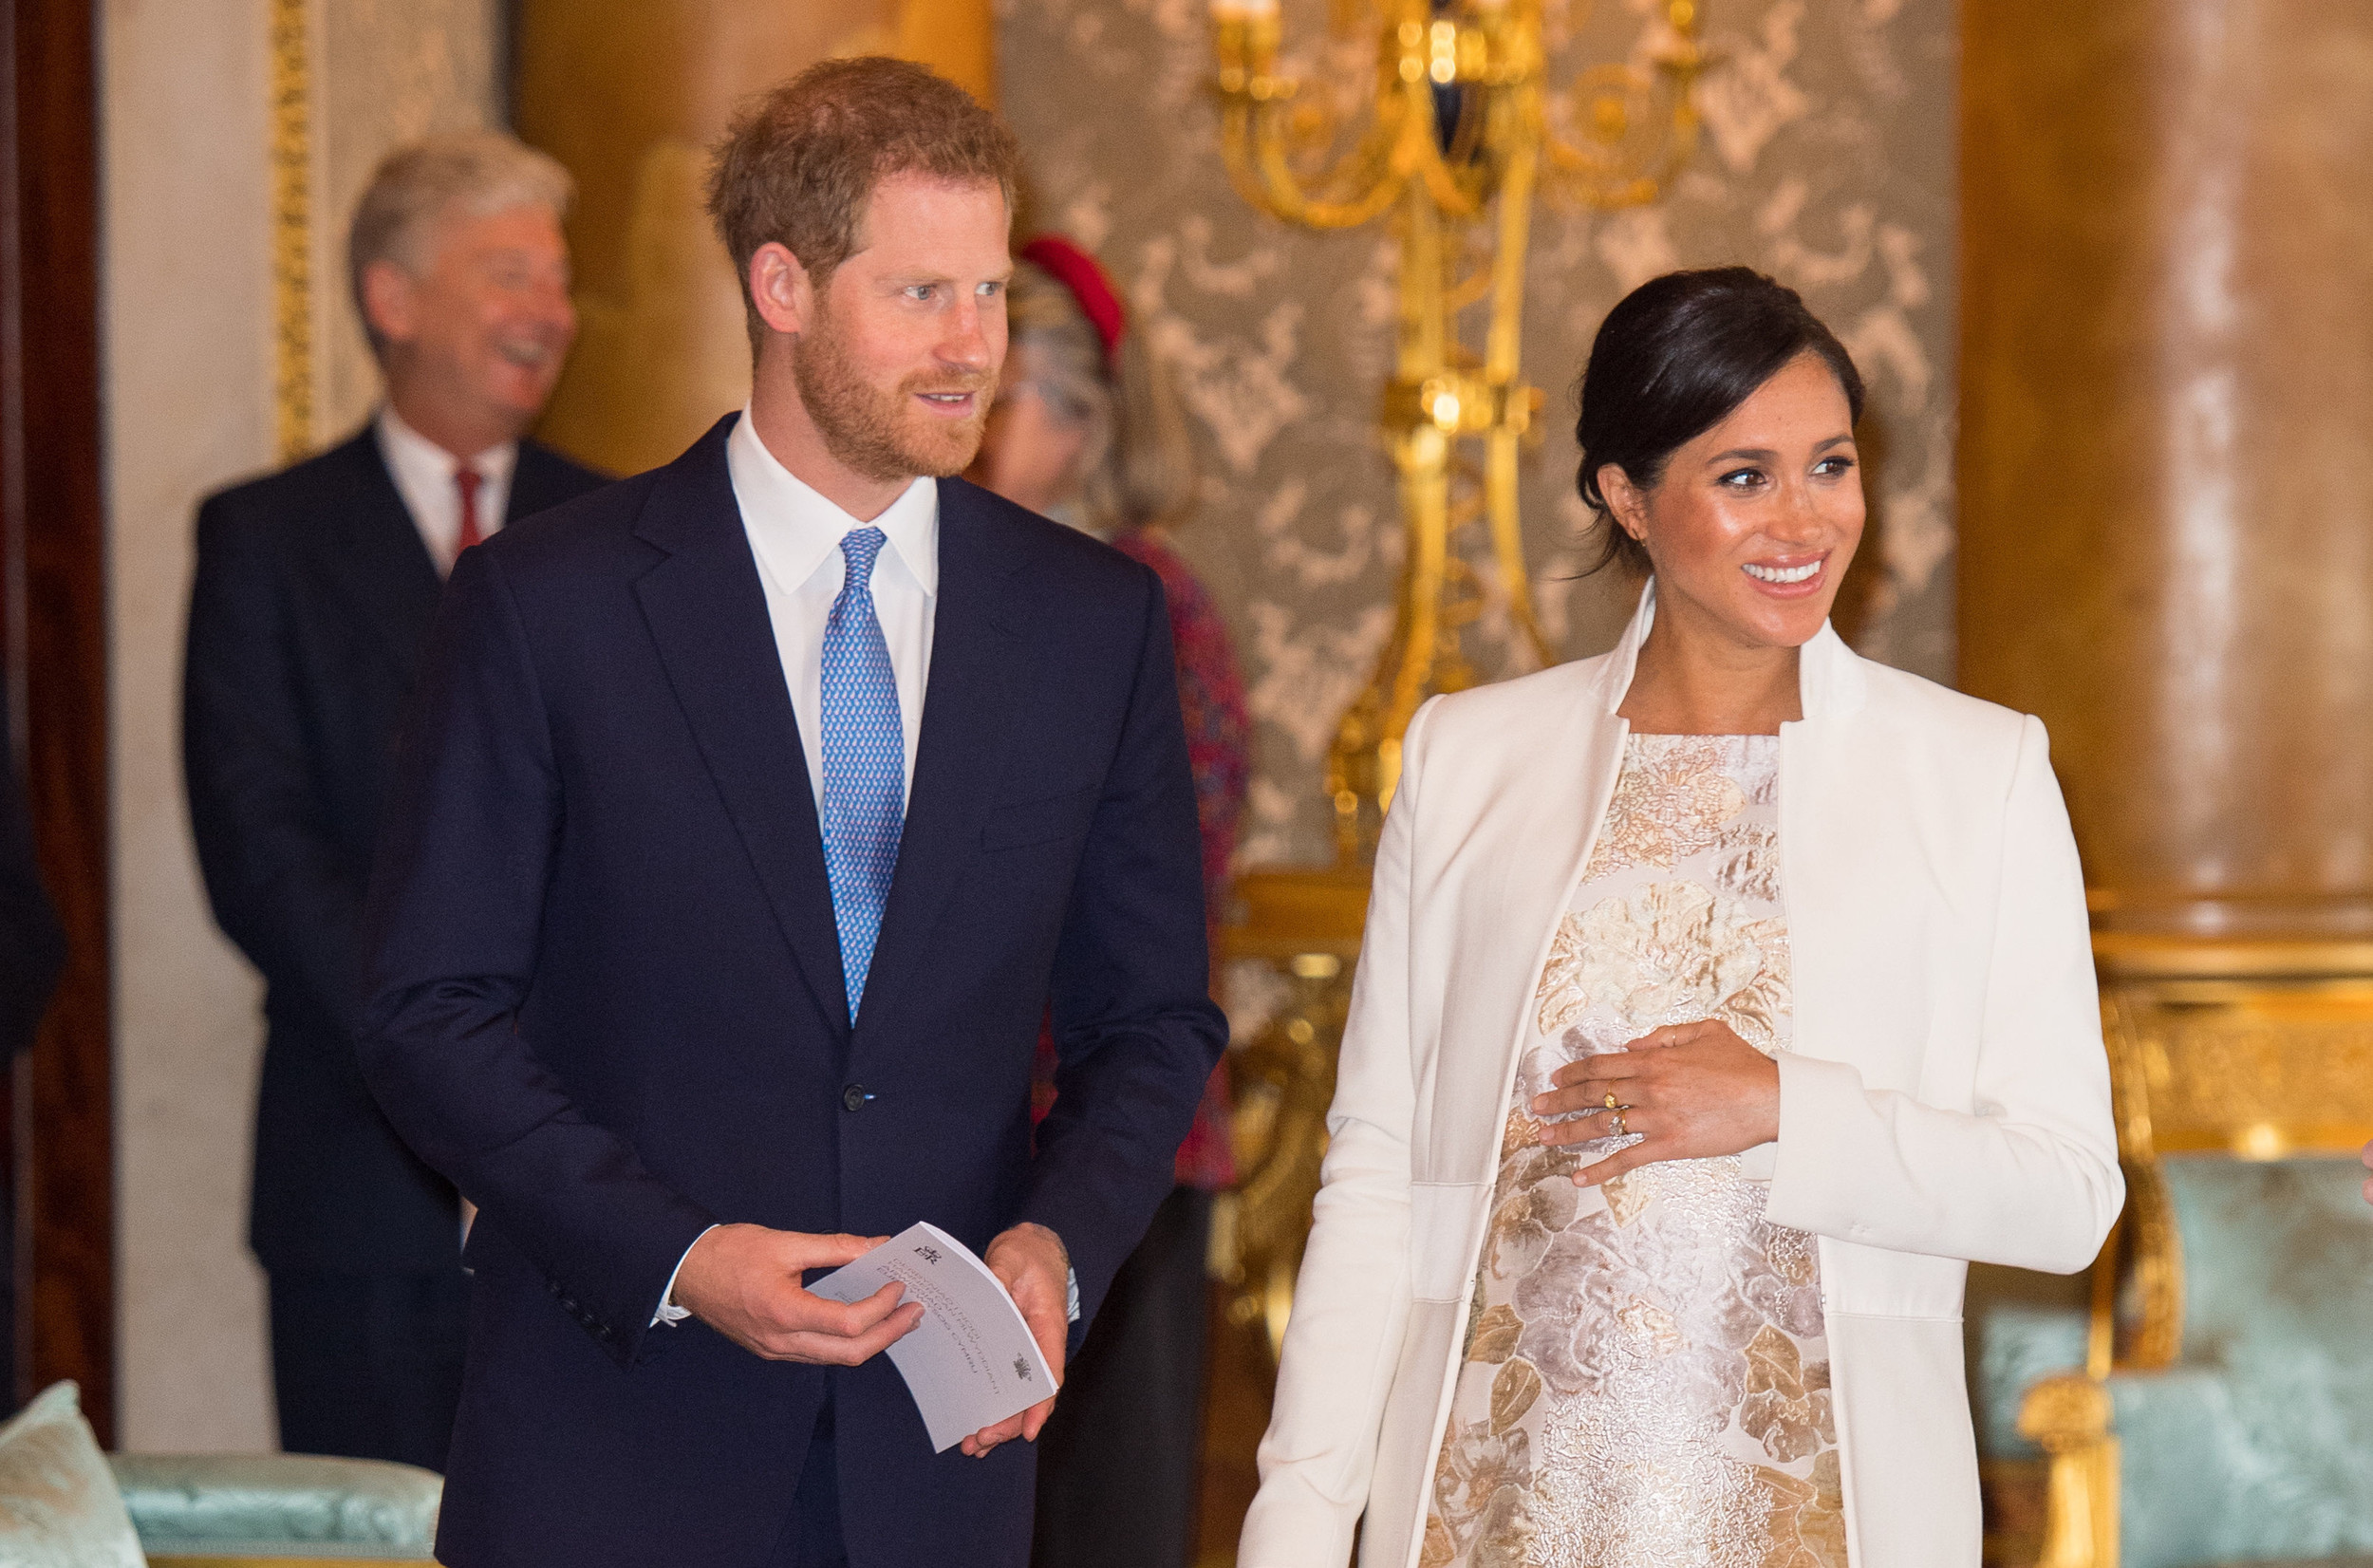 LONDON, ENGLAND - MARCH 5: Meghan, Duchess of Sussex and Prince Harry, Duke of Sussex attend a reception to mark the fiftieth anniversary of the investiture of the Prince of Wales at Buckingham Palace on March 5, 2019 in London, England. (Photo by...